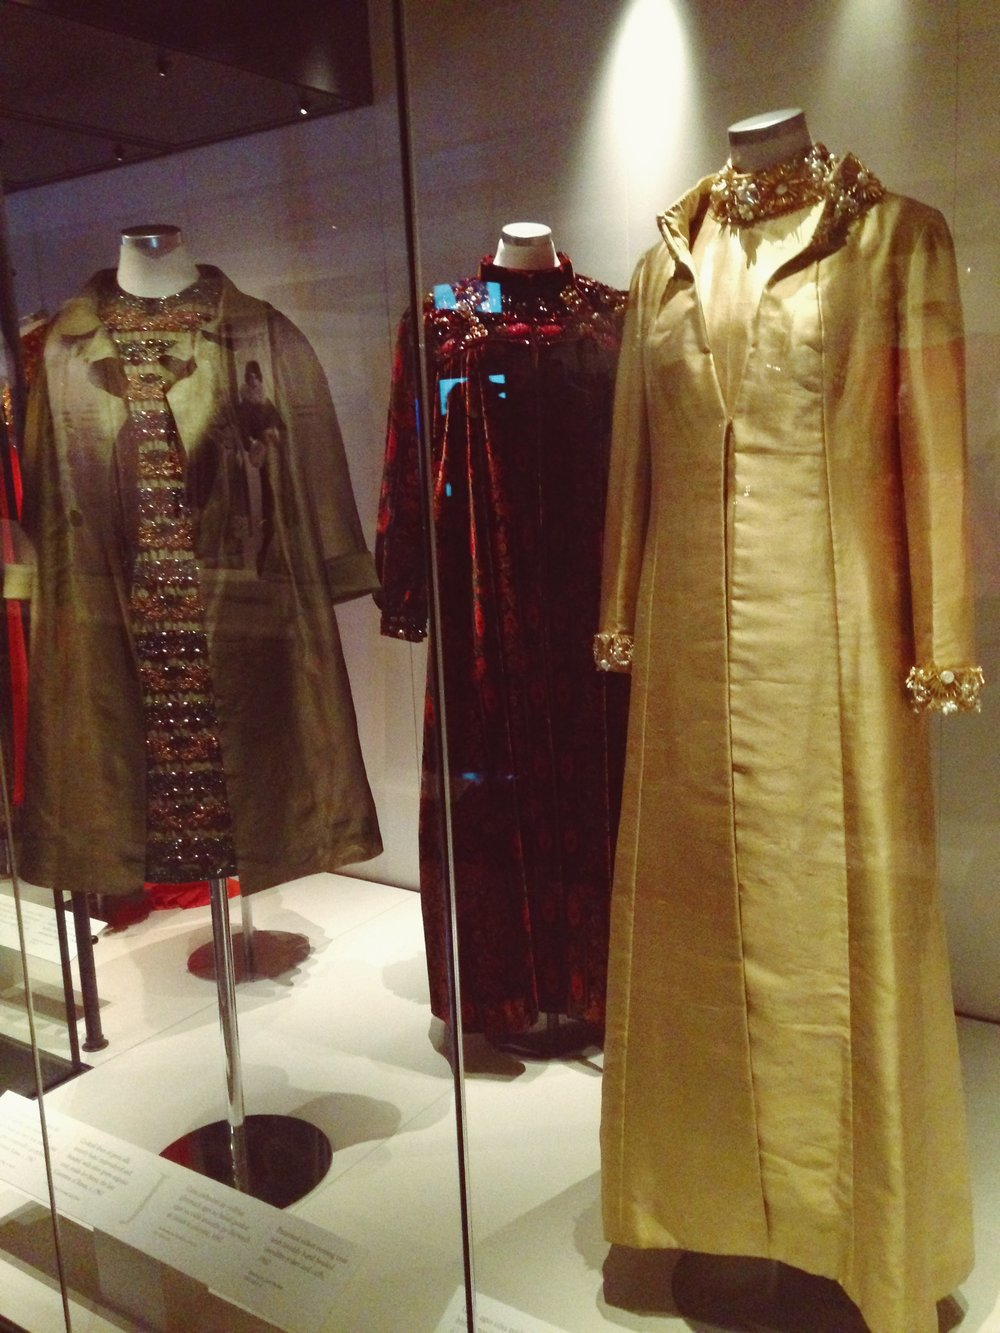 Vintage garments from the 1950s/1960s by Ib Jorgensen.